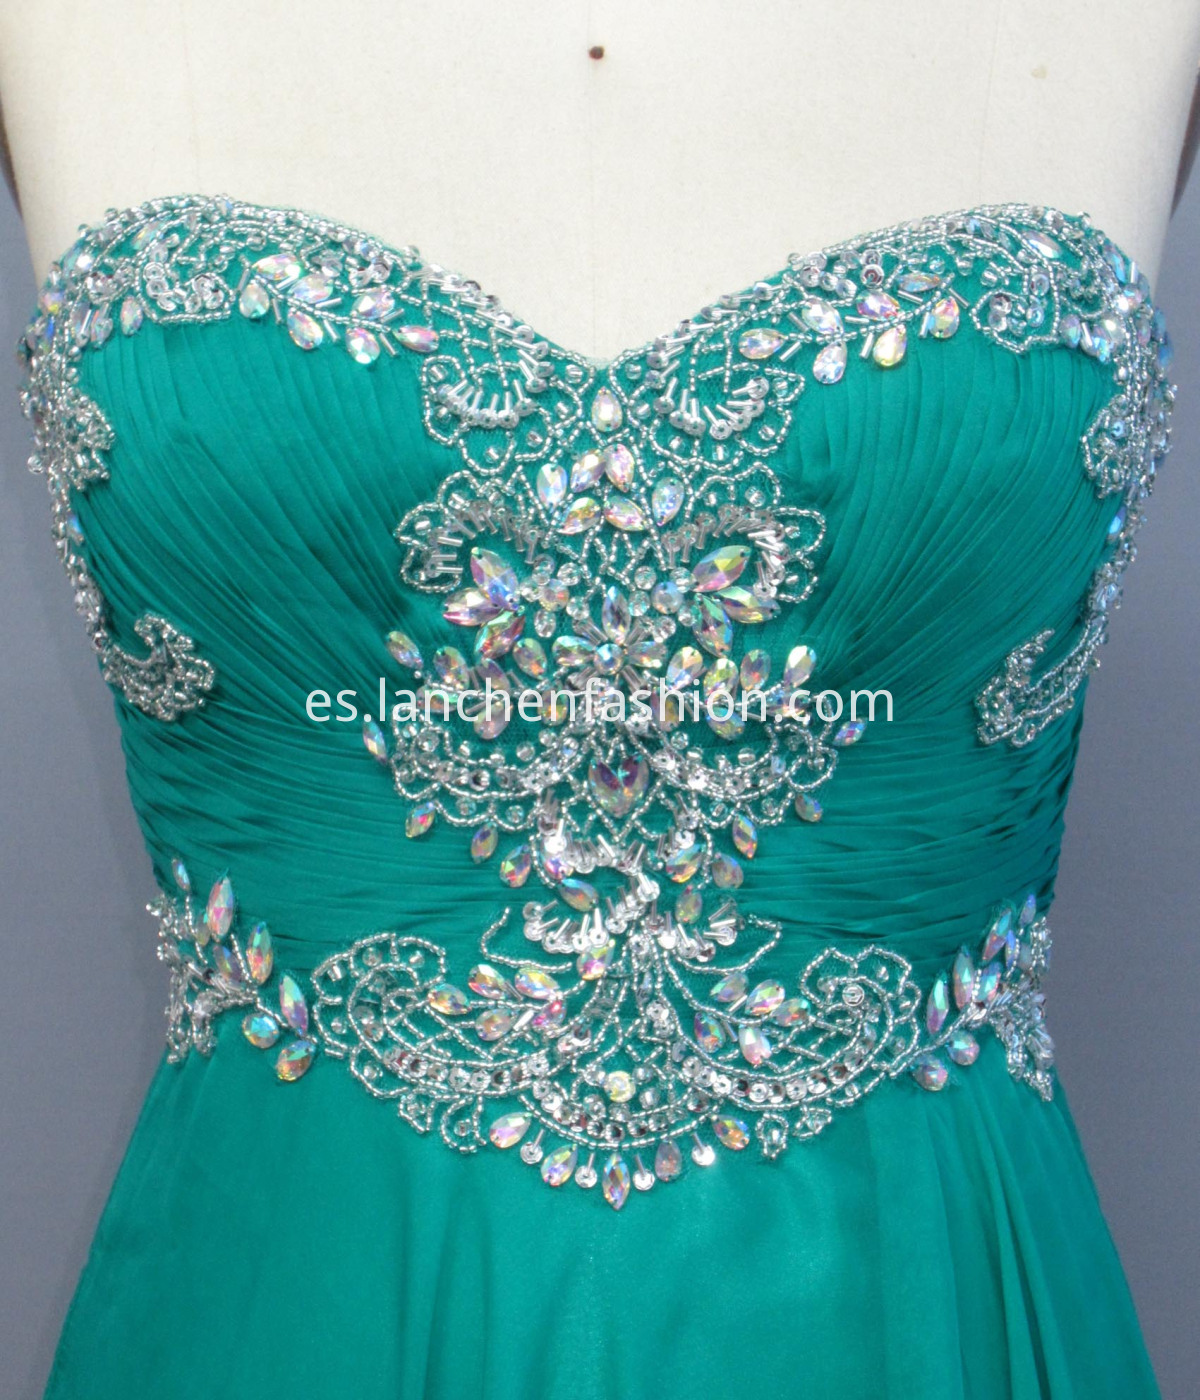 Sleeveless Dress Green